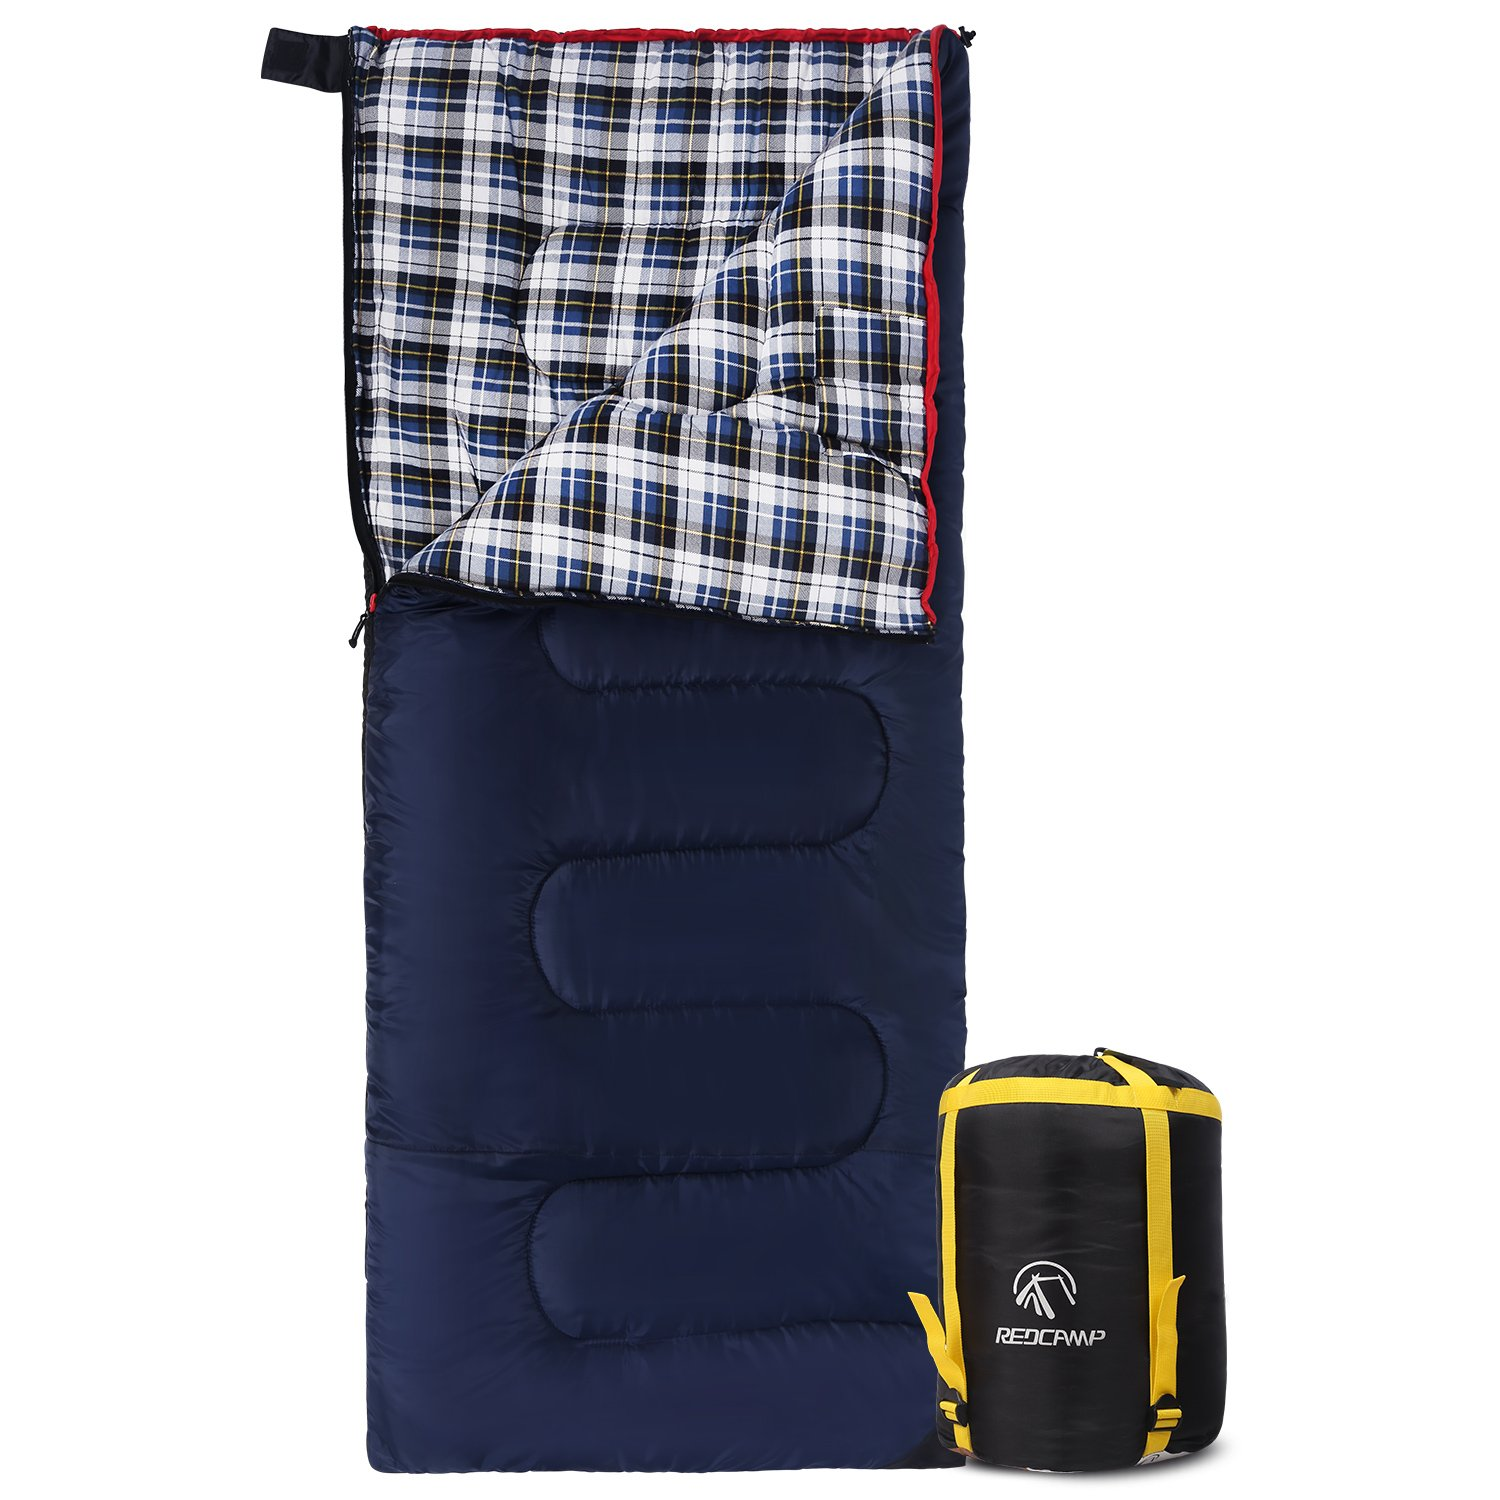 "REDCAMP Cotton Flannel Sleeping Bags for Camping, 41F/5C 3-4 Season Warm and Comfortable, Envelope Blue with 2/3/4lbs Filling (75""x33"")"